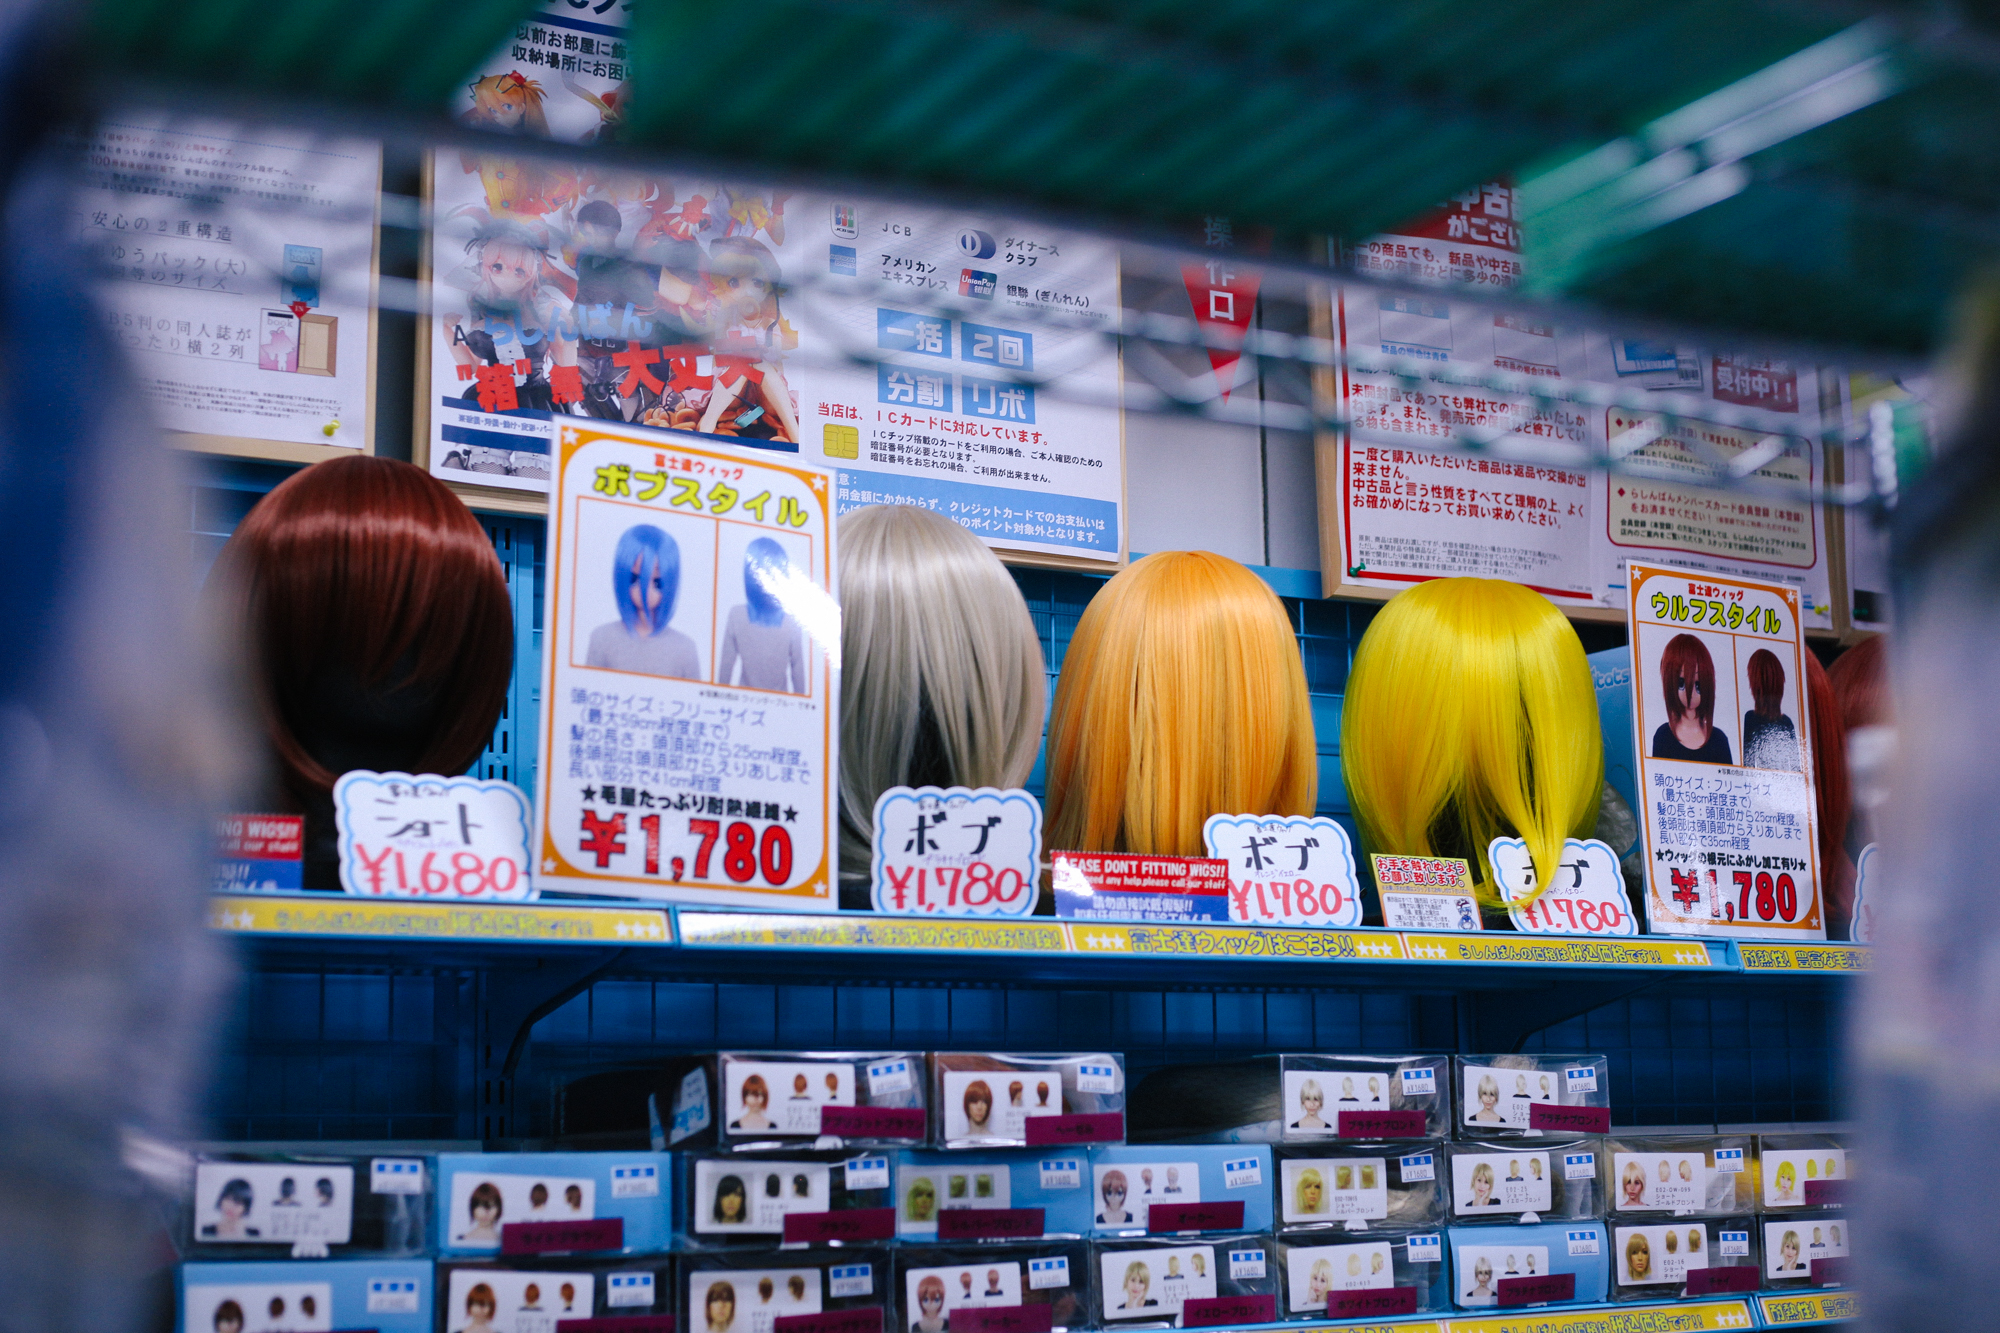 Plenty of cosplay wigs to choose from  if you're into that kind of thing .